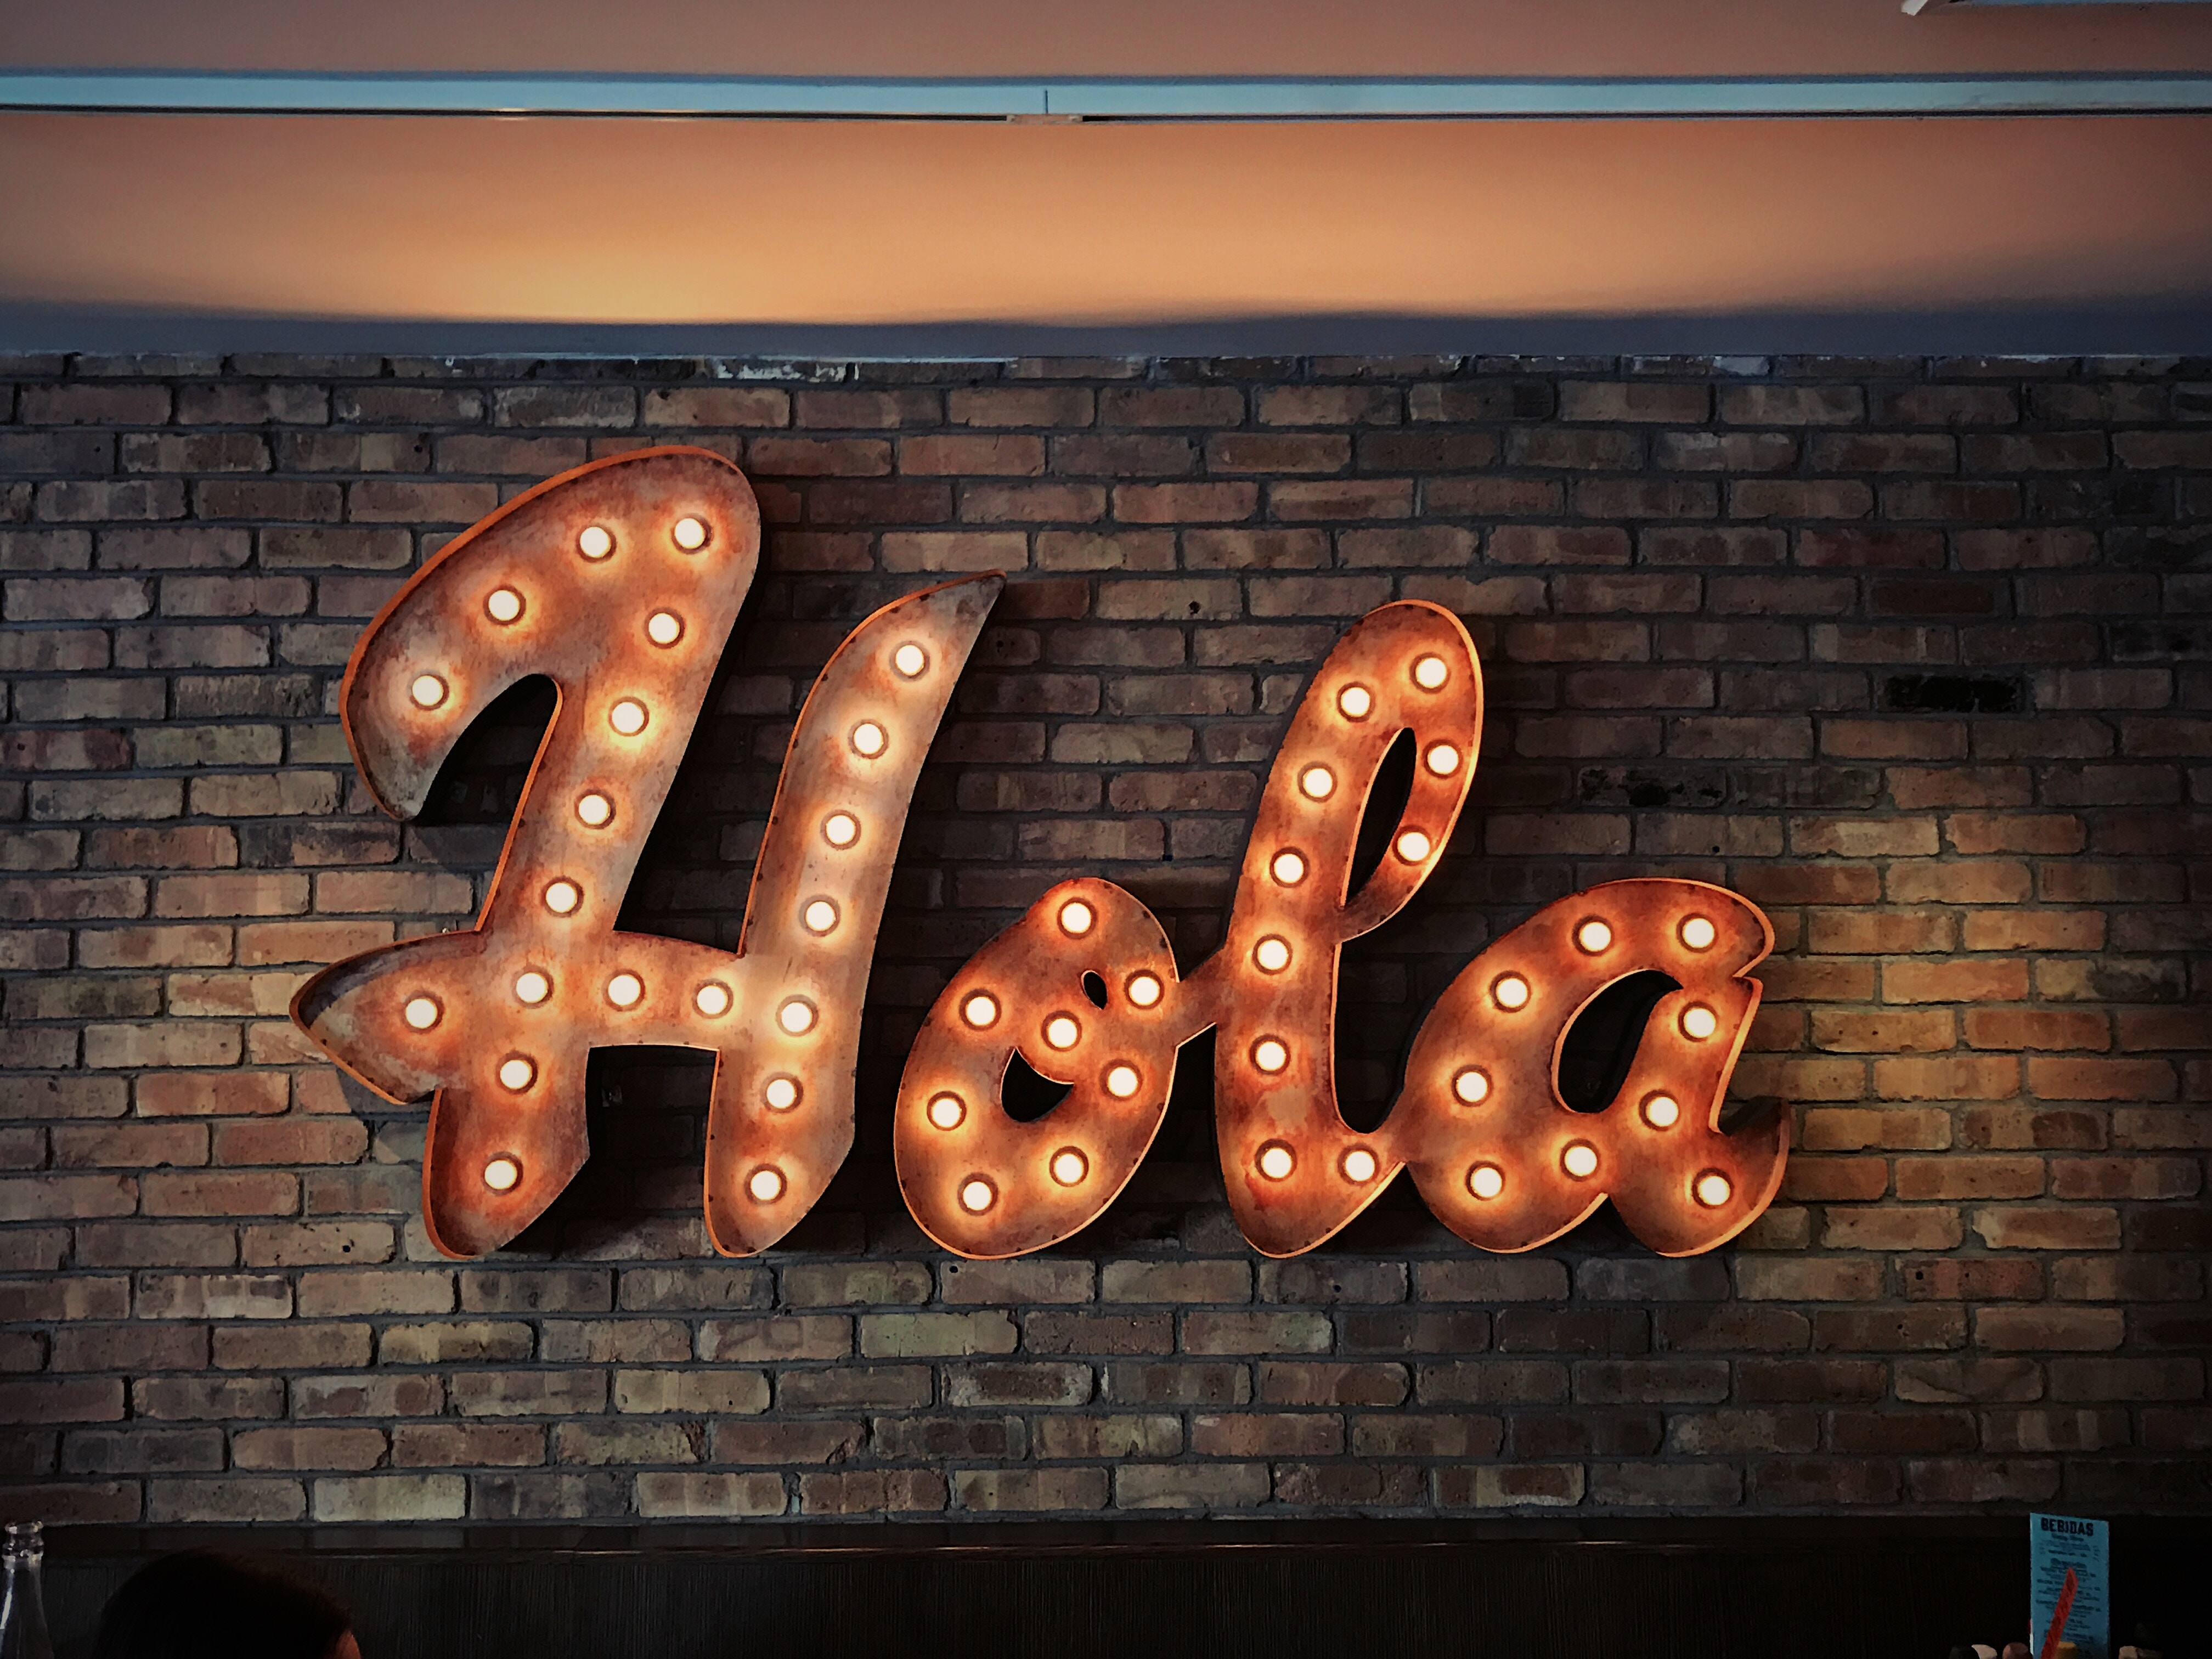 """Bright light bulbs in a sign reading """"Hola"""" on a brick wall"""